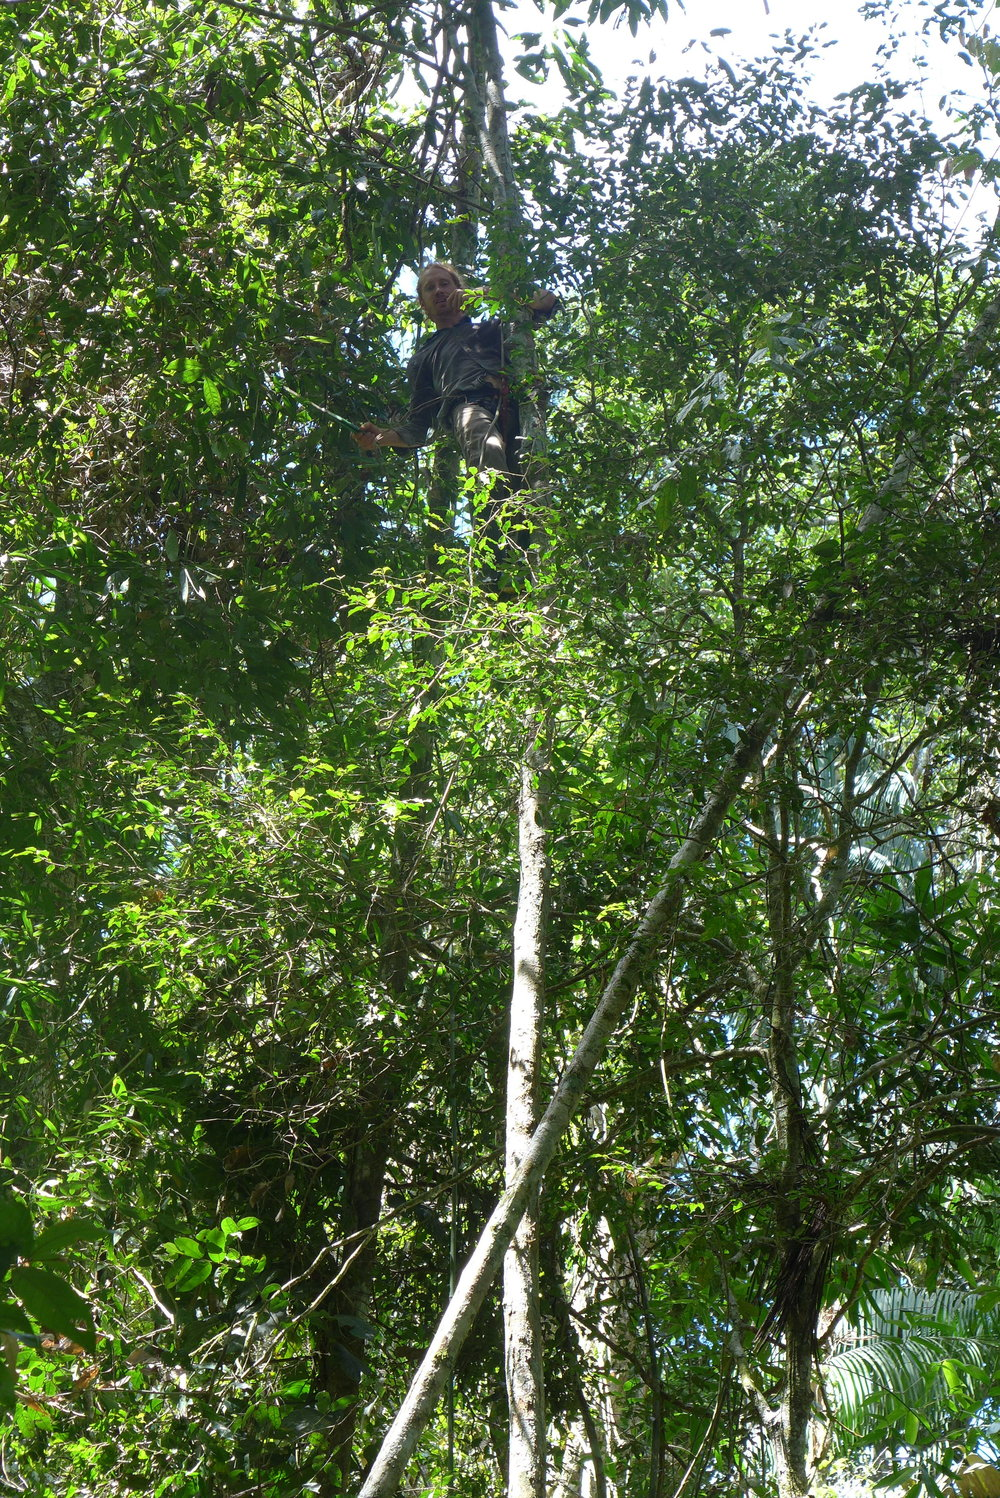 A Camino Verde volunteer climbs a young canelón tree to harvest branches and leaves.